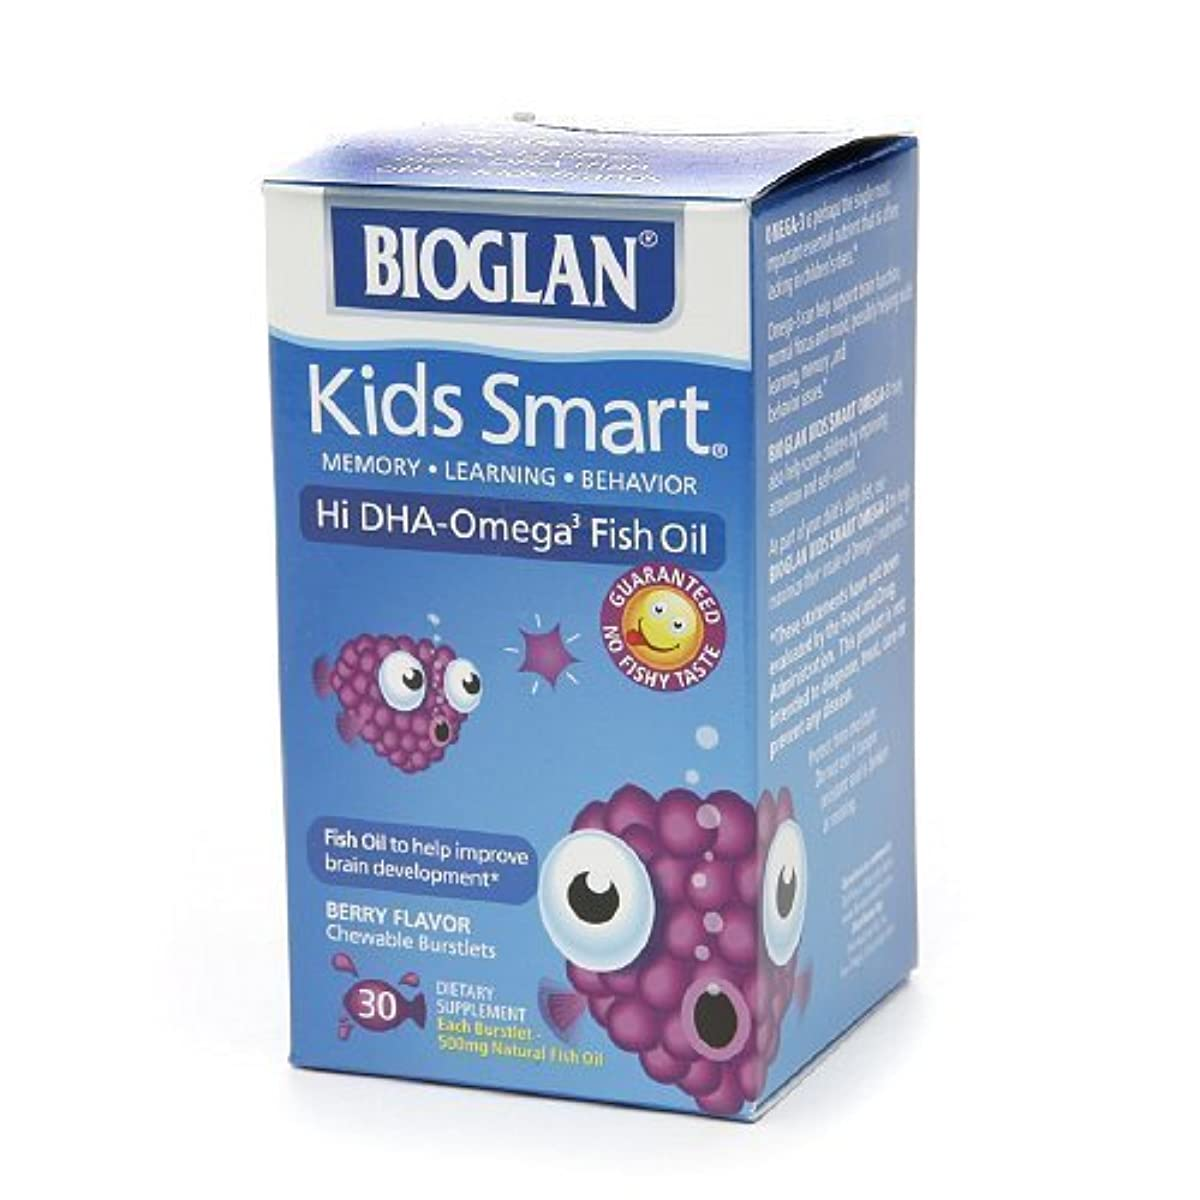 細分化する裏切り感嘆BioGlan Kids Smart Hi DHA Omega-3 Fish Oil, Chewable Burstlets, Berry--30 ea-Product ID DRU-318828_1 by bioglan...